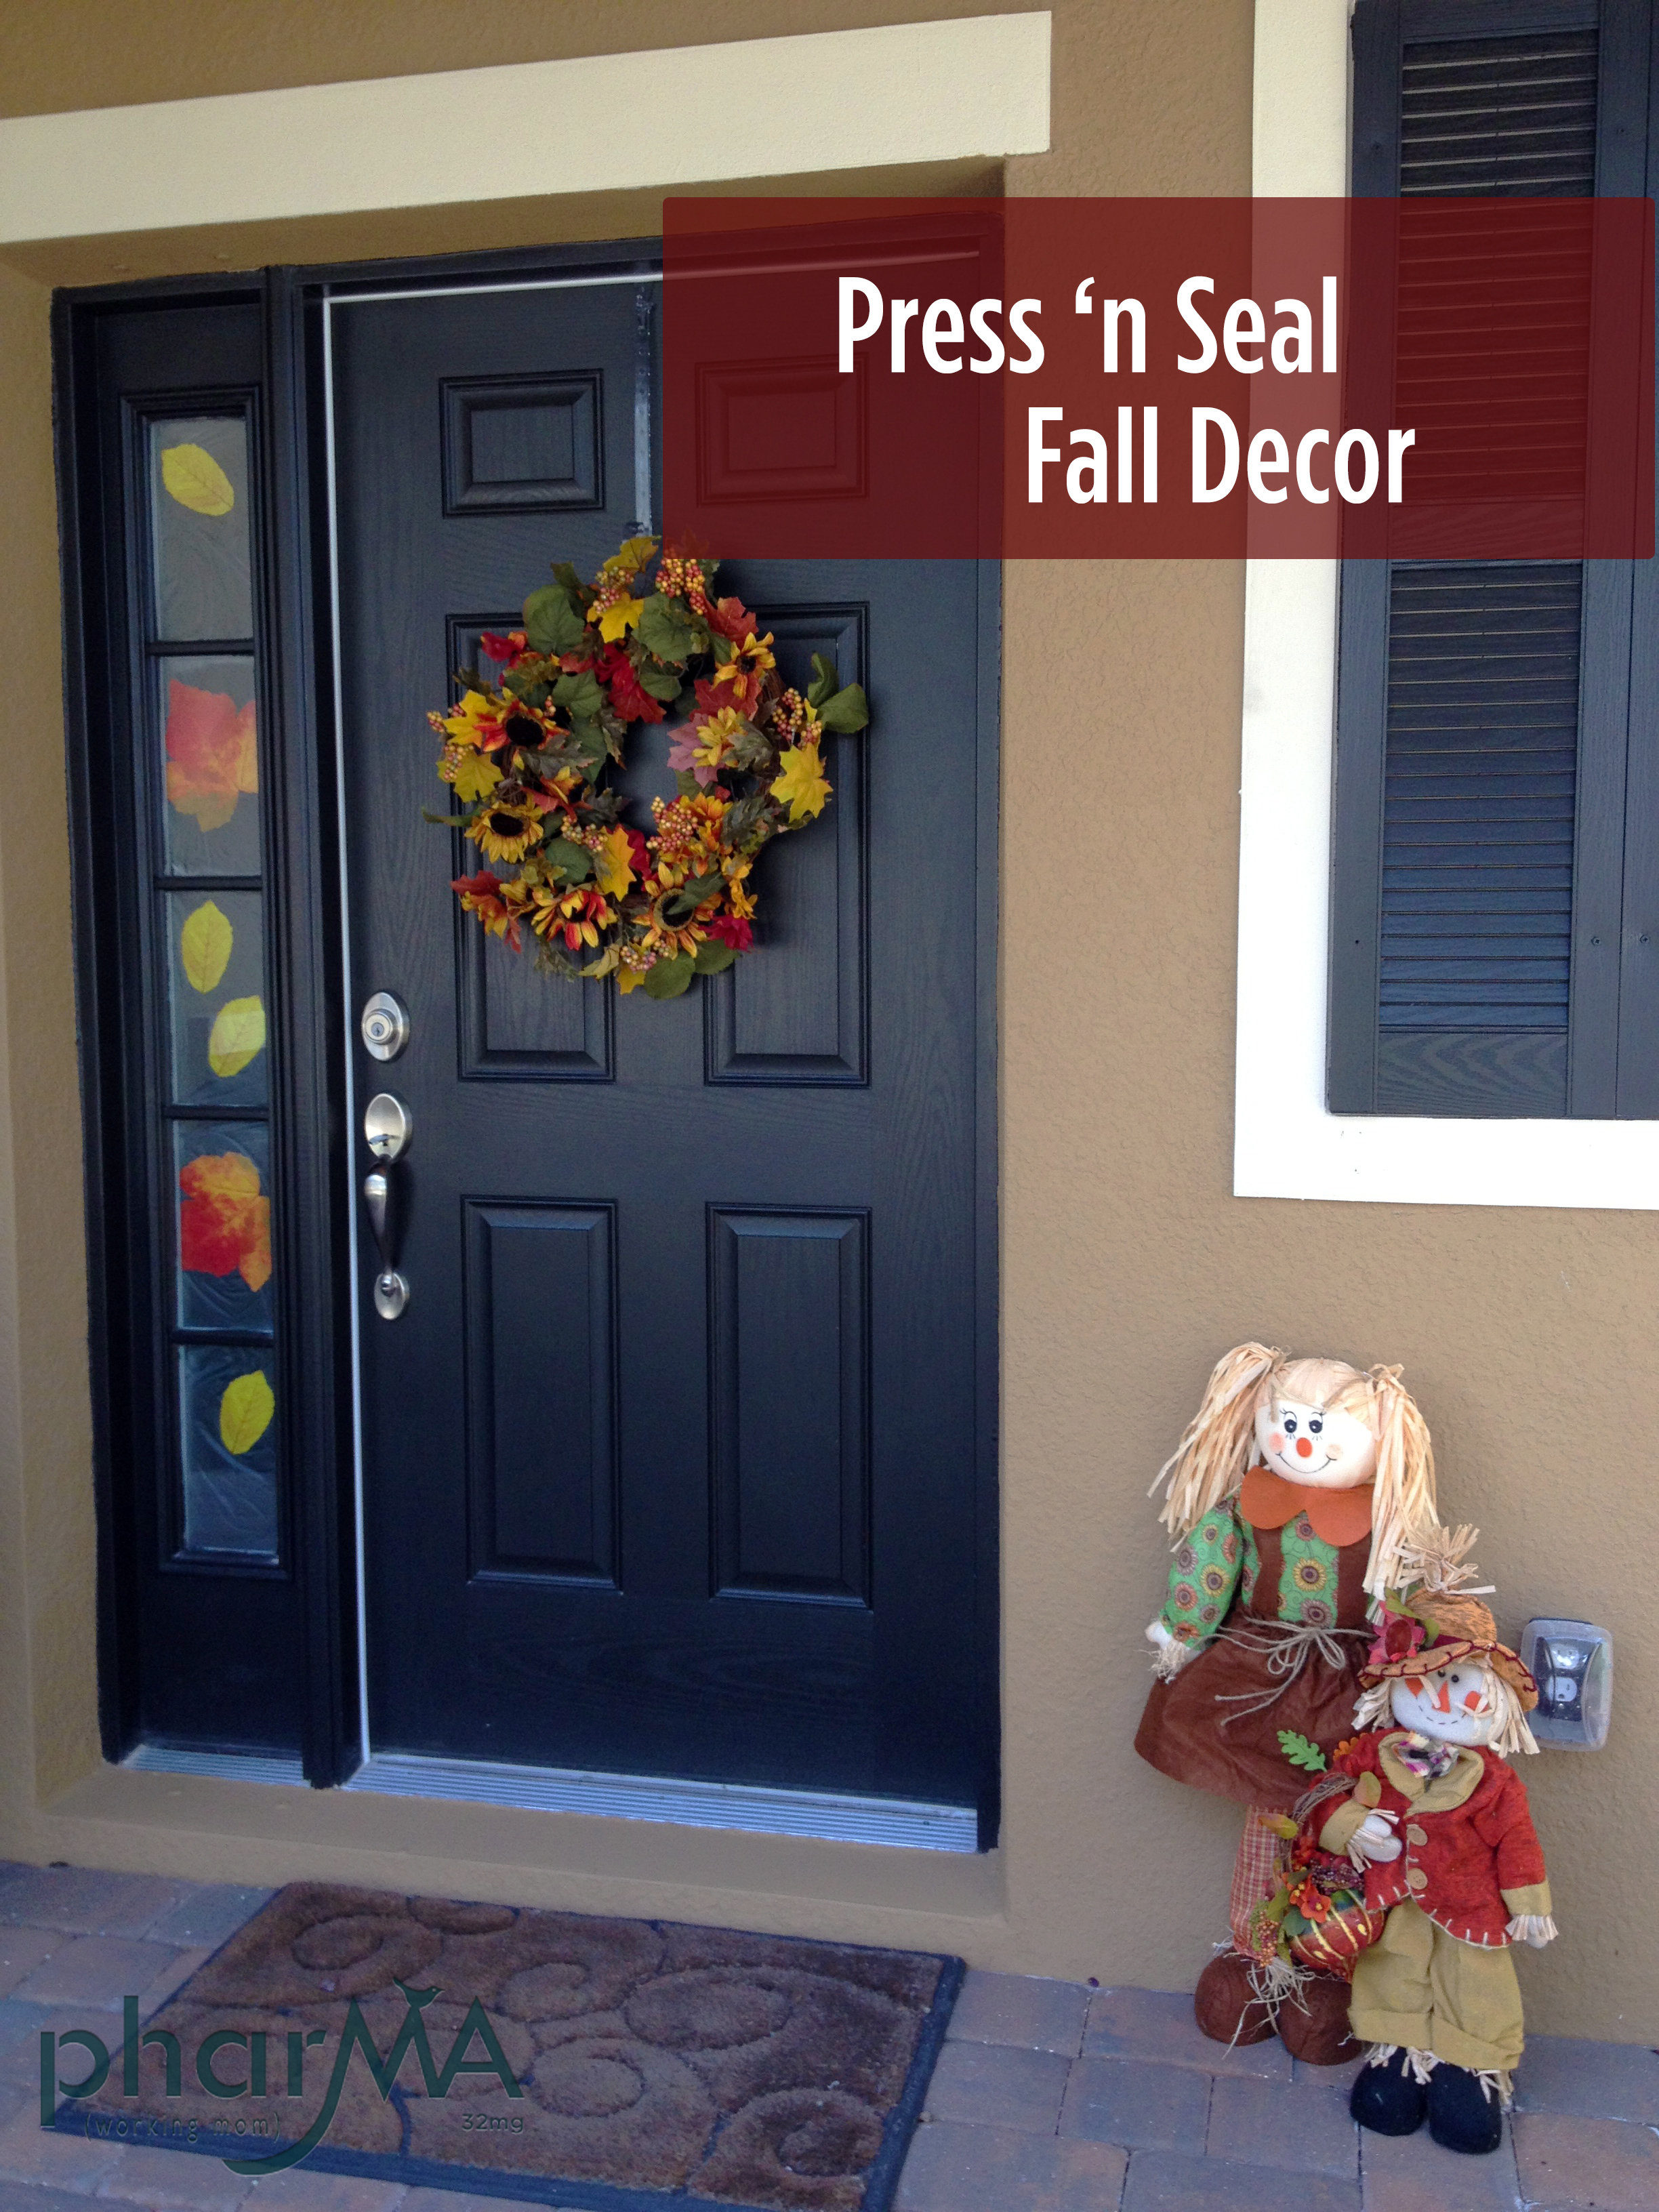 Easy Last Minute Press 'N Seal Fall Decor